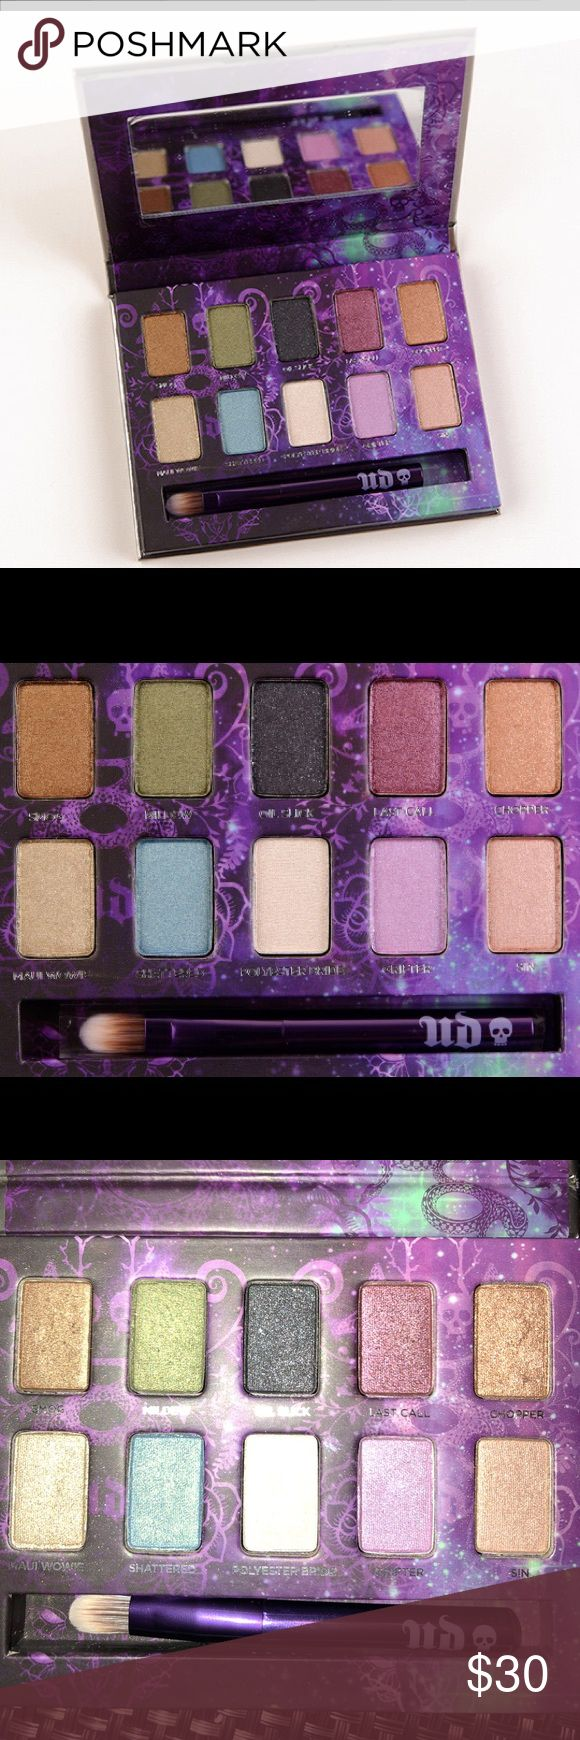 Urban Decay Eyeshadow Palette Urban Decay - Ammo eyeshadow Palette. Comes with brush, this palette is brand new and never touched. It's been sitting in my makeup drawer so it has a few dents on the cover but no damage to the makeup! Urban Decay Makeup Eyeshadow